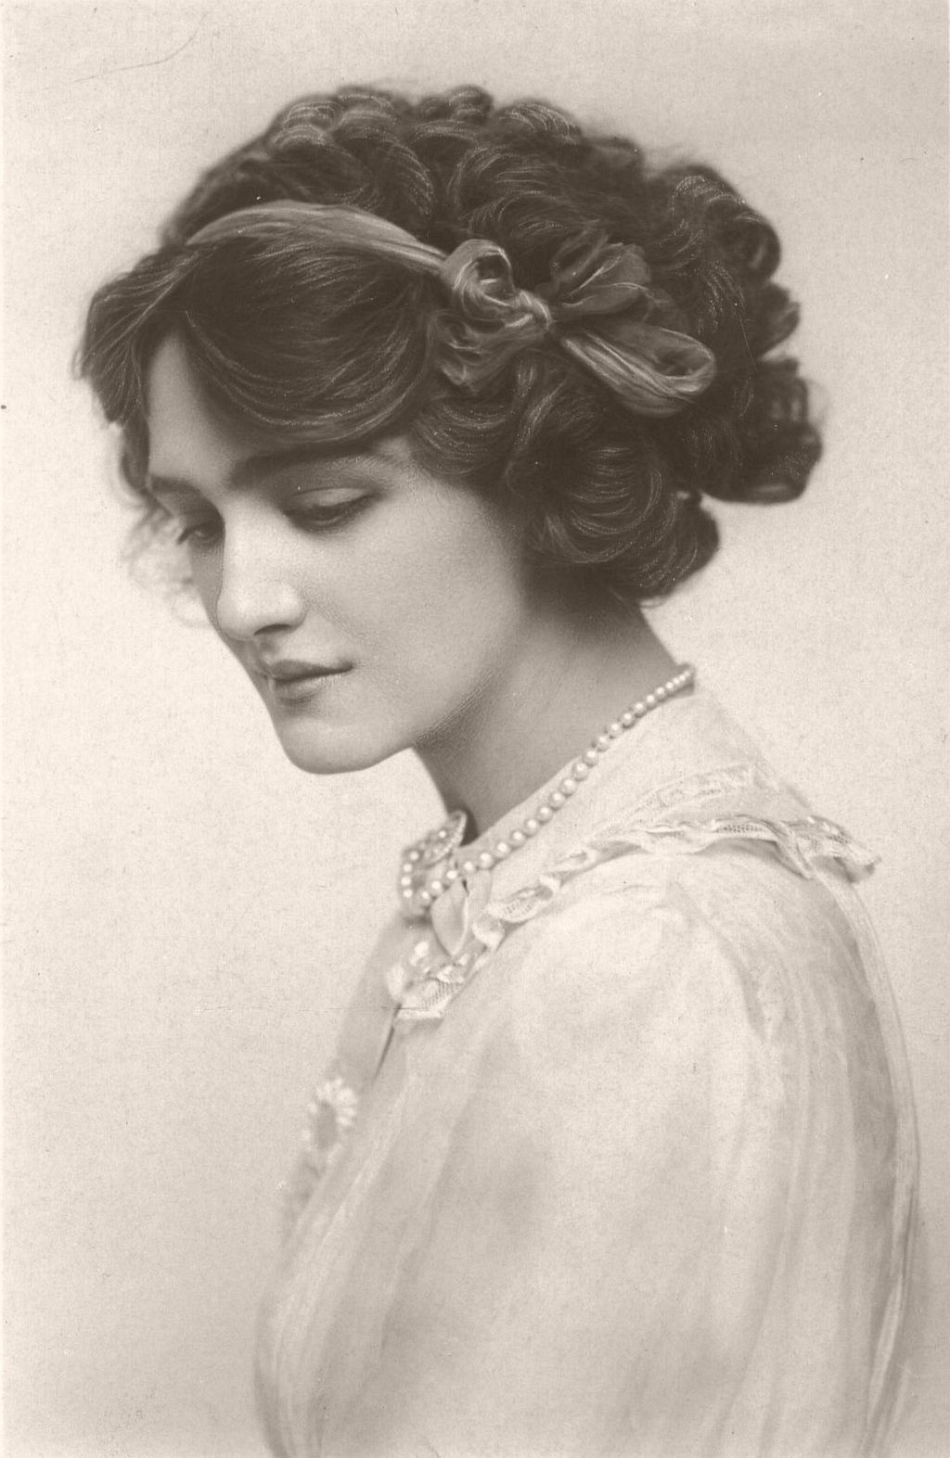 Lily Elsie (born Elsie Hodder; 1886 – 1962) was a popular English actress and singer during the Edwardian era.  Beginning as a child star in the 1890s, Elsie built her reputation in several successful Edwardian musical comedies before her great success in The Merry Widow, opening in 1907. Afterwards, she starred in several more successful operettas and musicals. Admired for her beauty and charm on stage, Elsie became one of the most photographed women of Edwardian times.